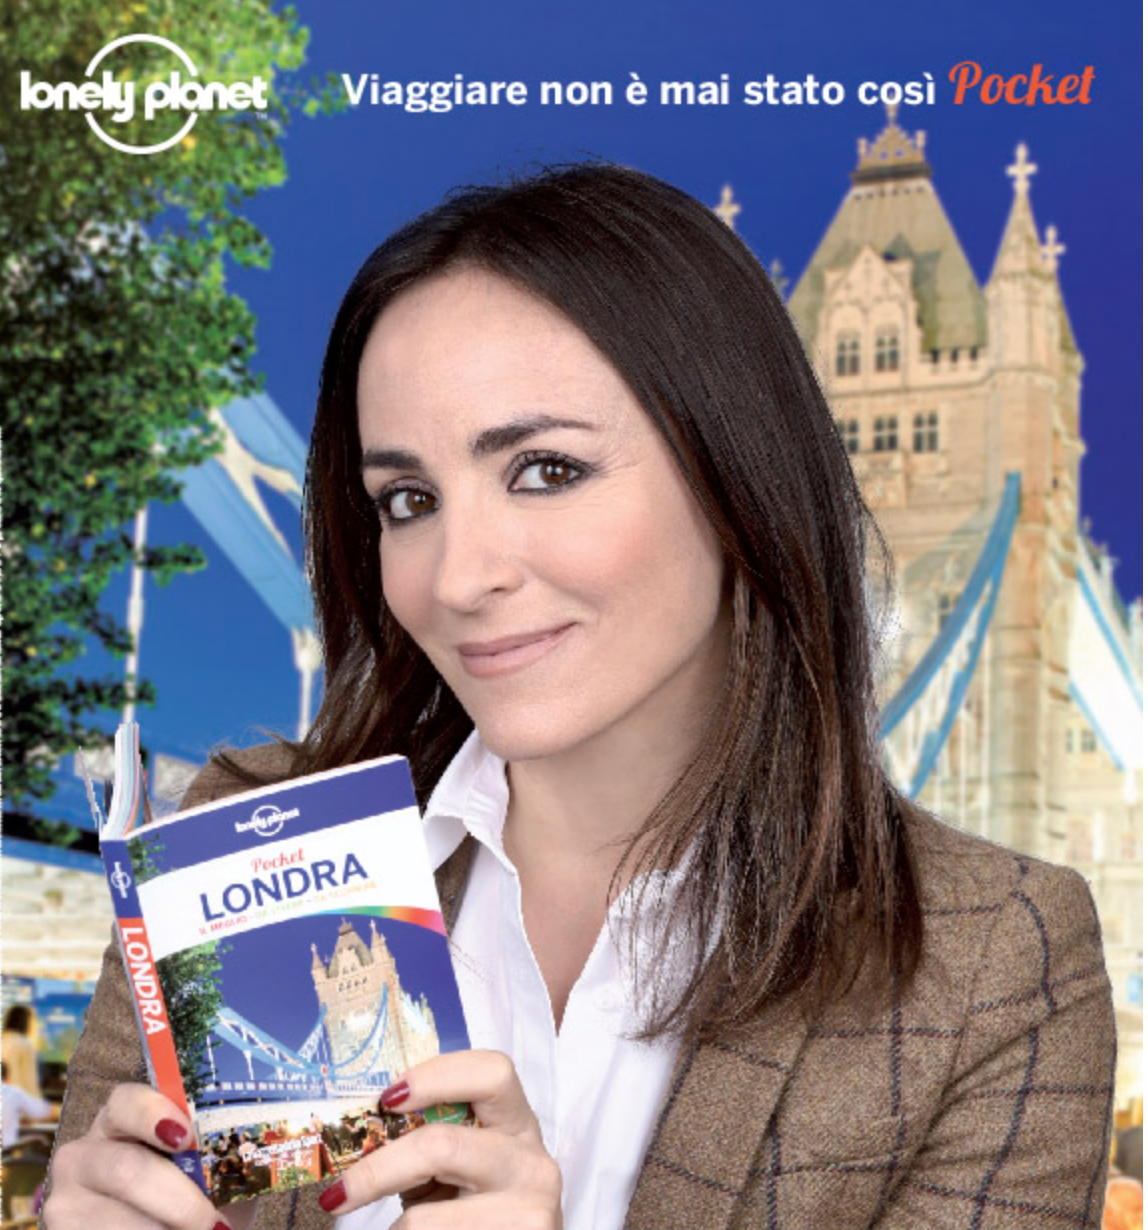 In vendita con la Gazzetta dello Sport 20 guide turistiche tascabili Lonely Planet Pocket